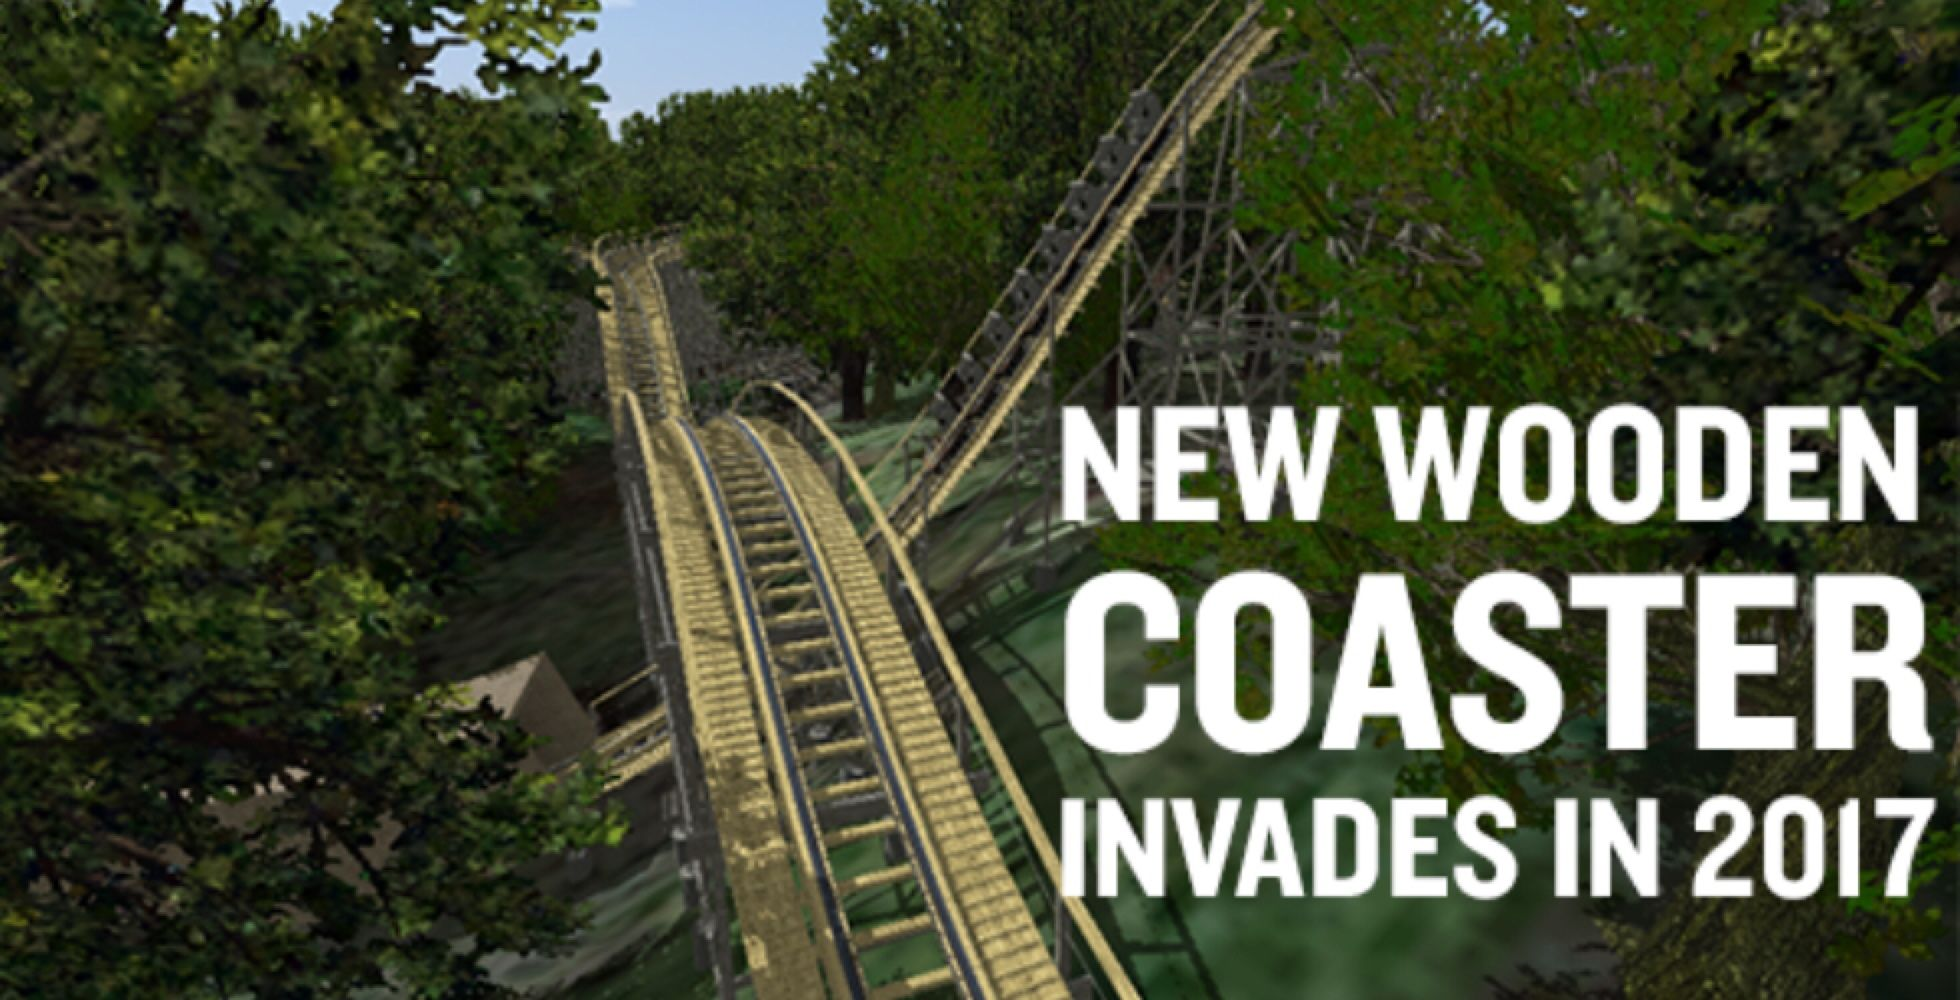 Good Busch Gardens Williamsburg Has Announced That It Is Building A  Viking Themed Wooden Coaster For